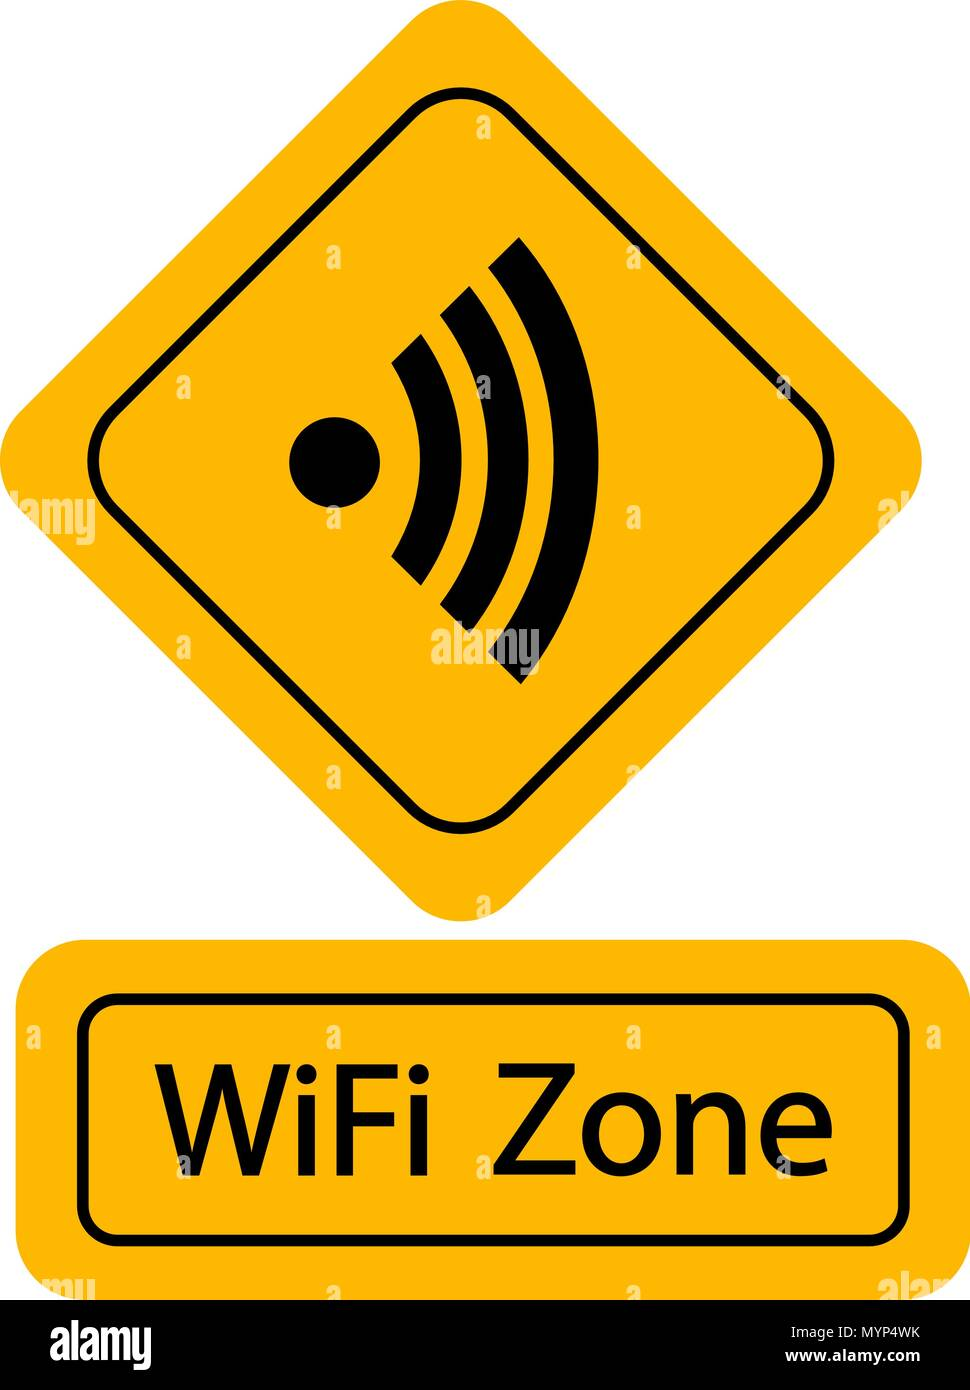 Wi-fi free zone sign Photo Stock